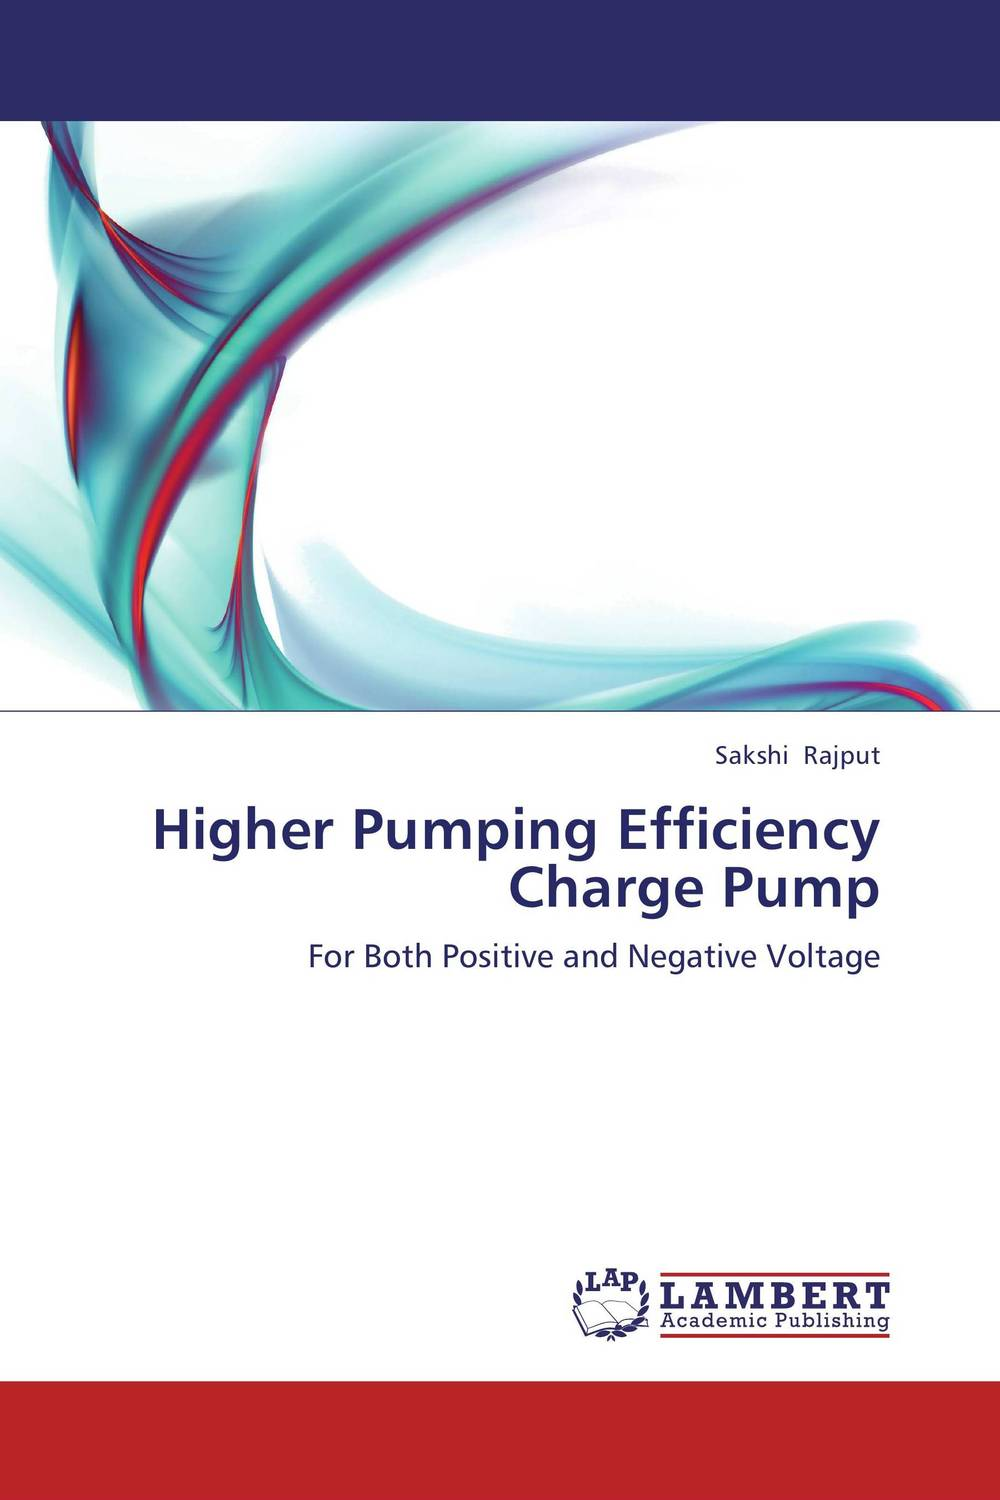 Higher Pumping Efficiency Charge Pump vfd110cp43b 21 delta vfd cp2000 vfd inverter frequency converter 11kw 15hp 3ph ac380 480v 600hz fan and water pump